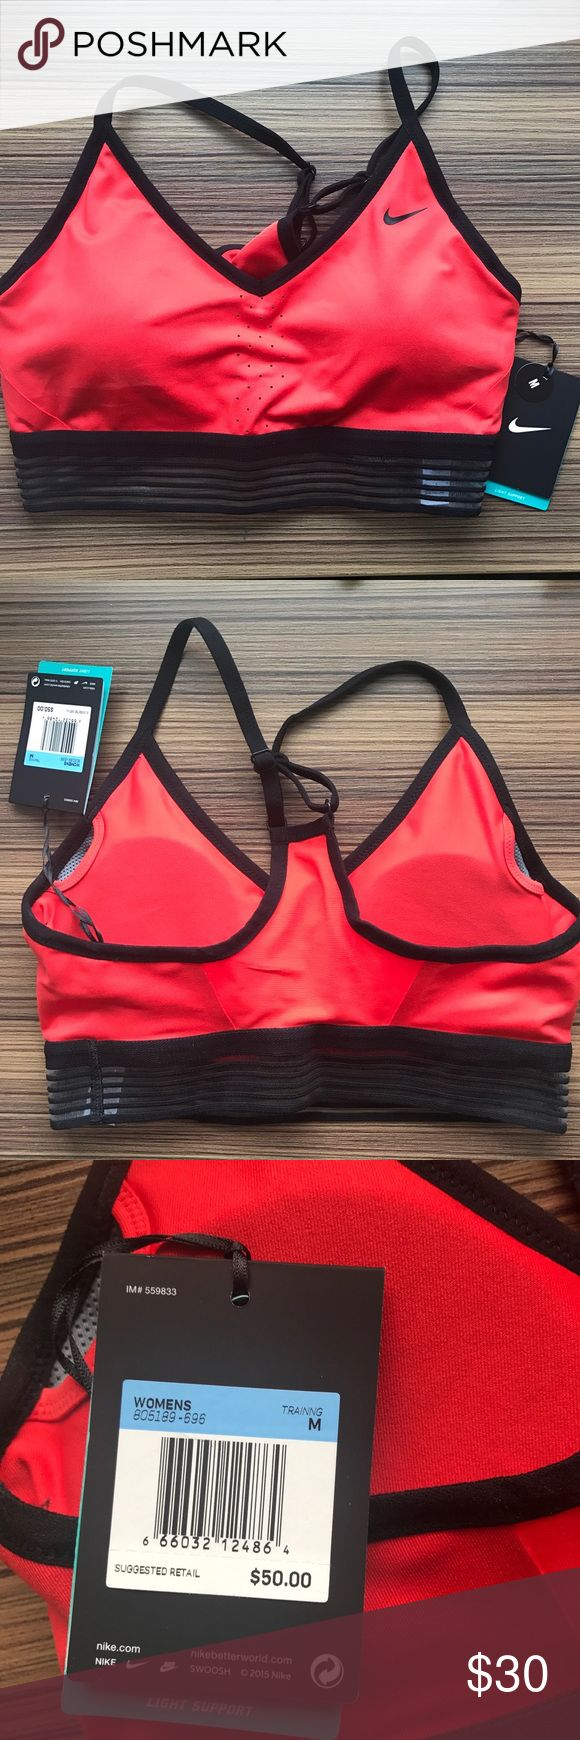 BRAND NEW Nike Sports Bra! New never worn. All original tags are attached. Size Medium red sports bra with removable pads. Originally listed as $50. The lining at the bottom is sheer but the bra itself is not. Nike Intimates & Sleepwear Bras